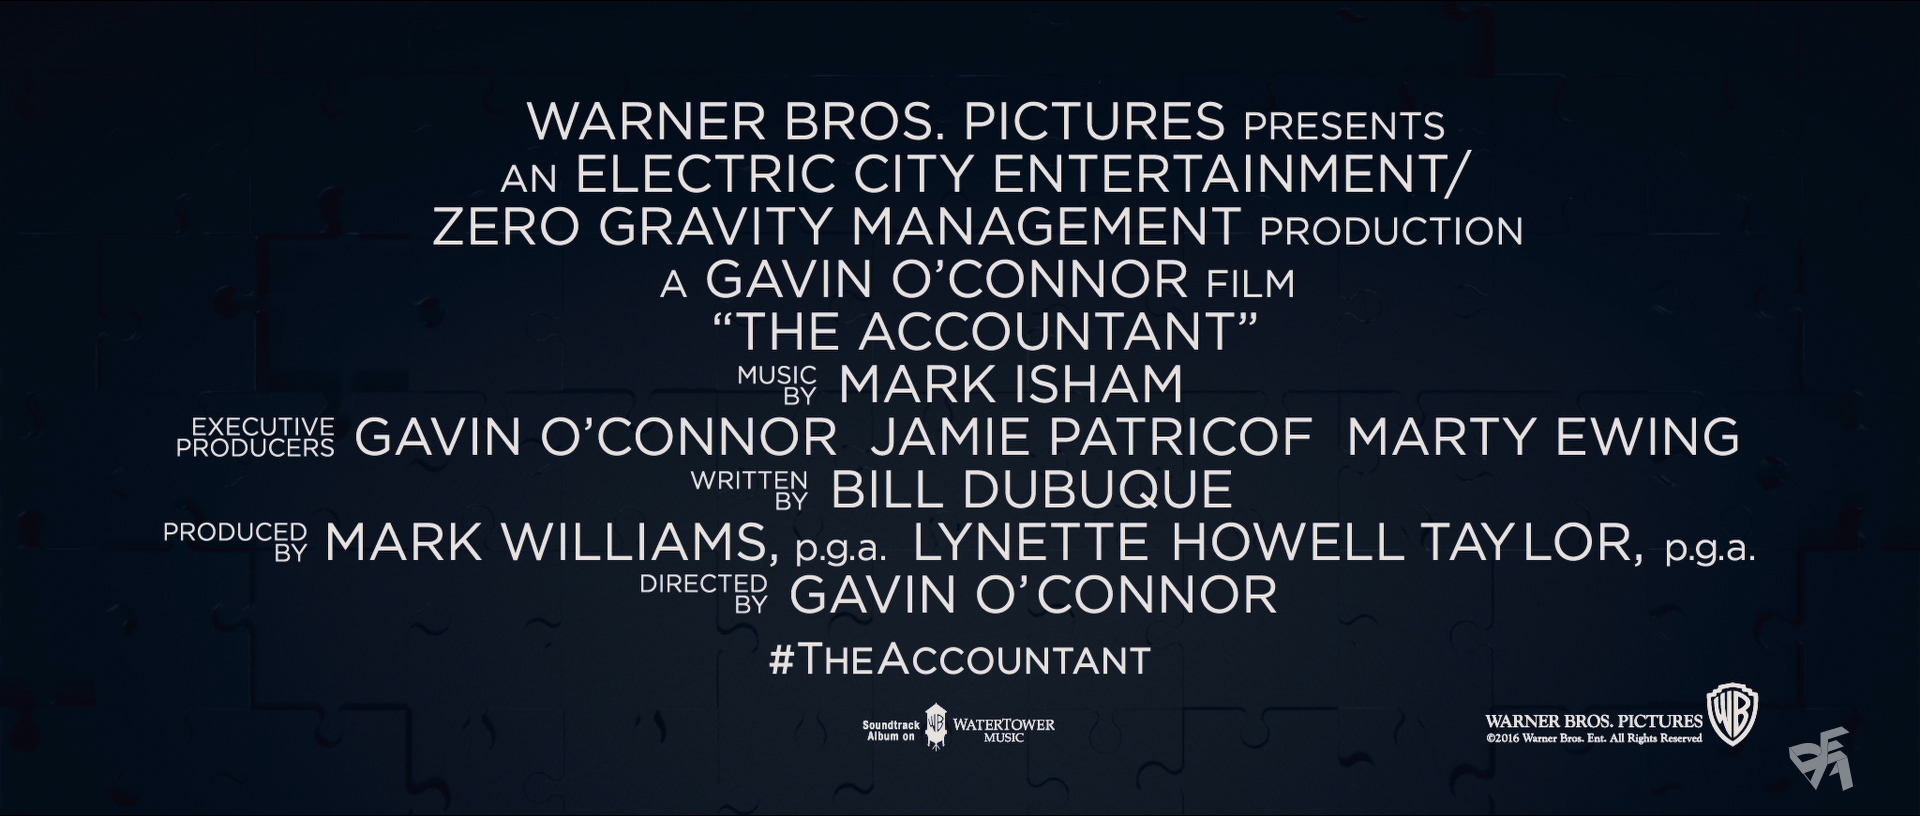 TheAccountant_TRAILERSTILL_09.jpg